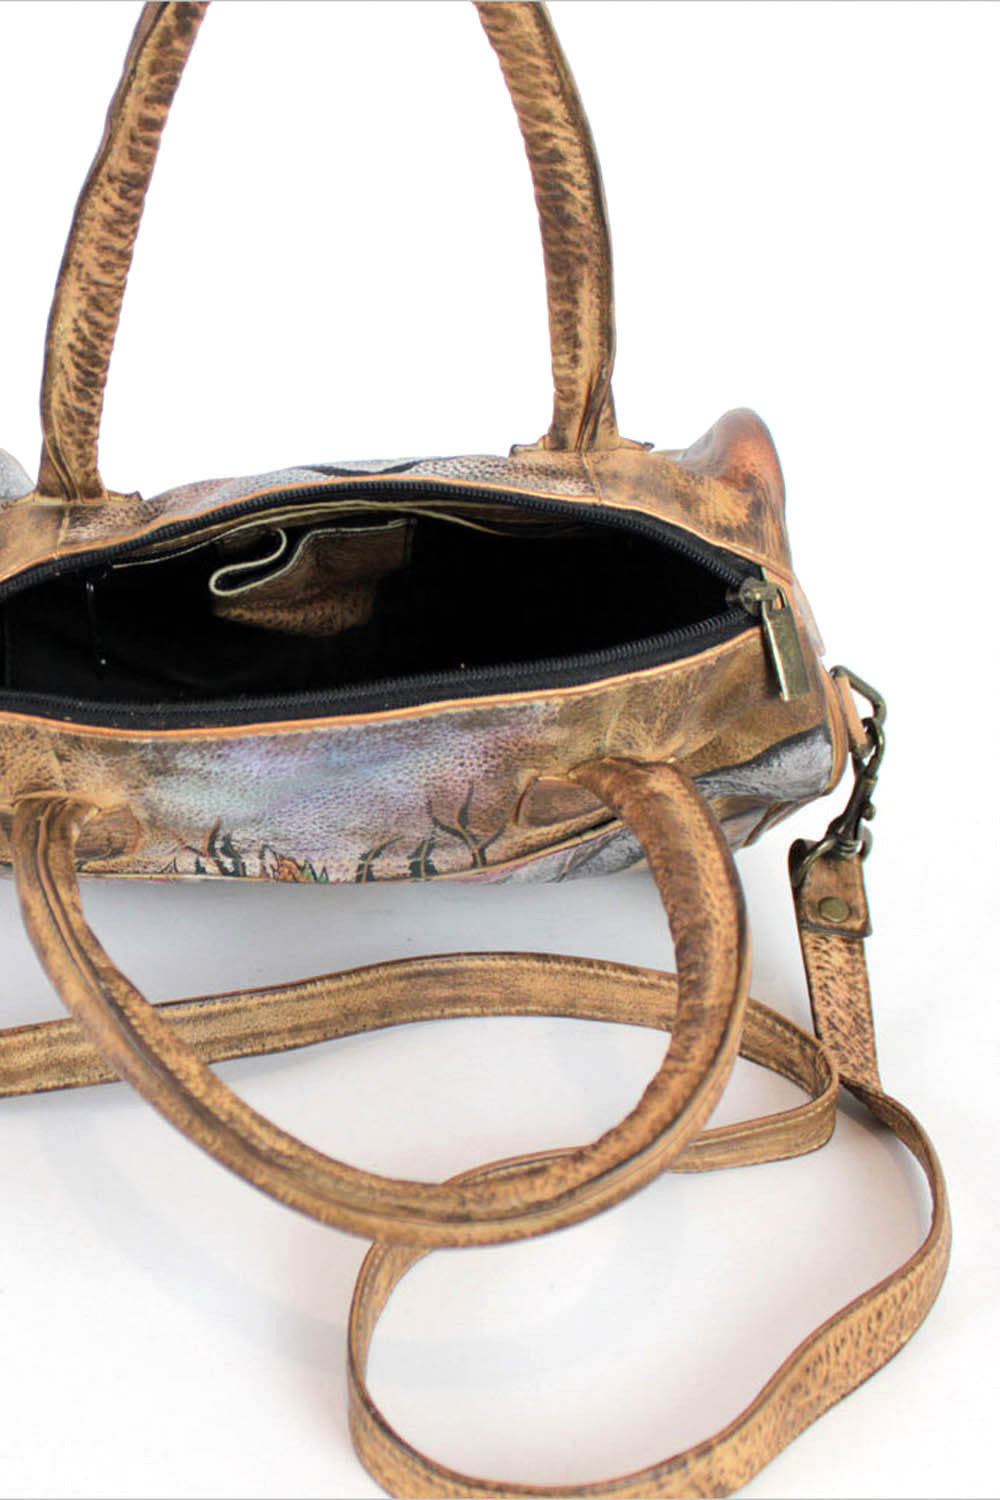 Painted Leather Satchel Bag